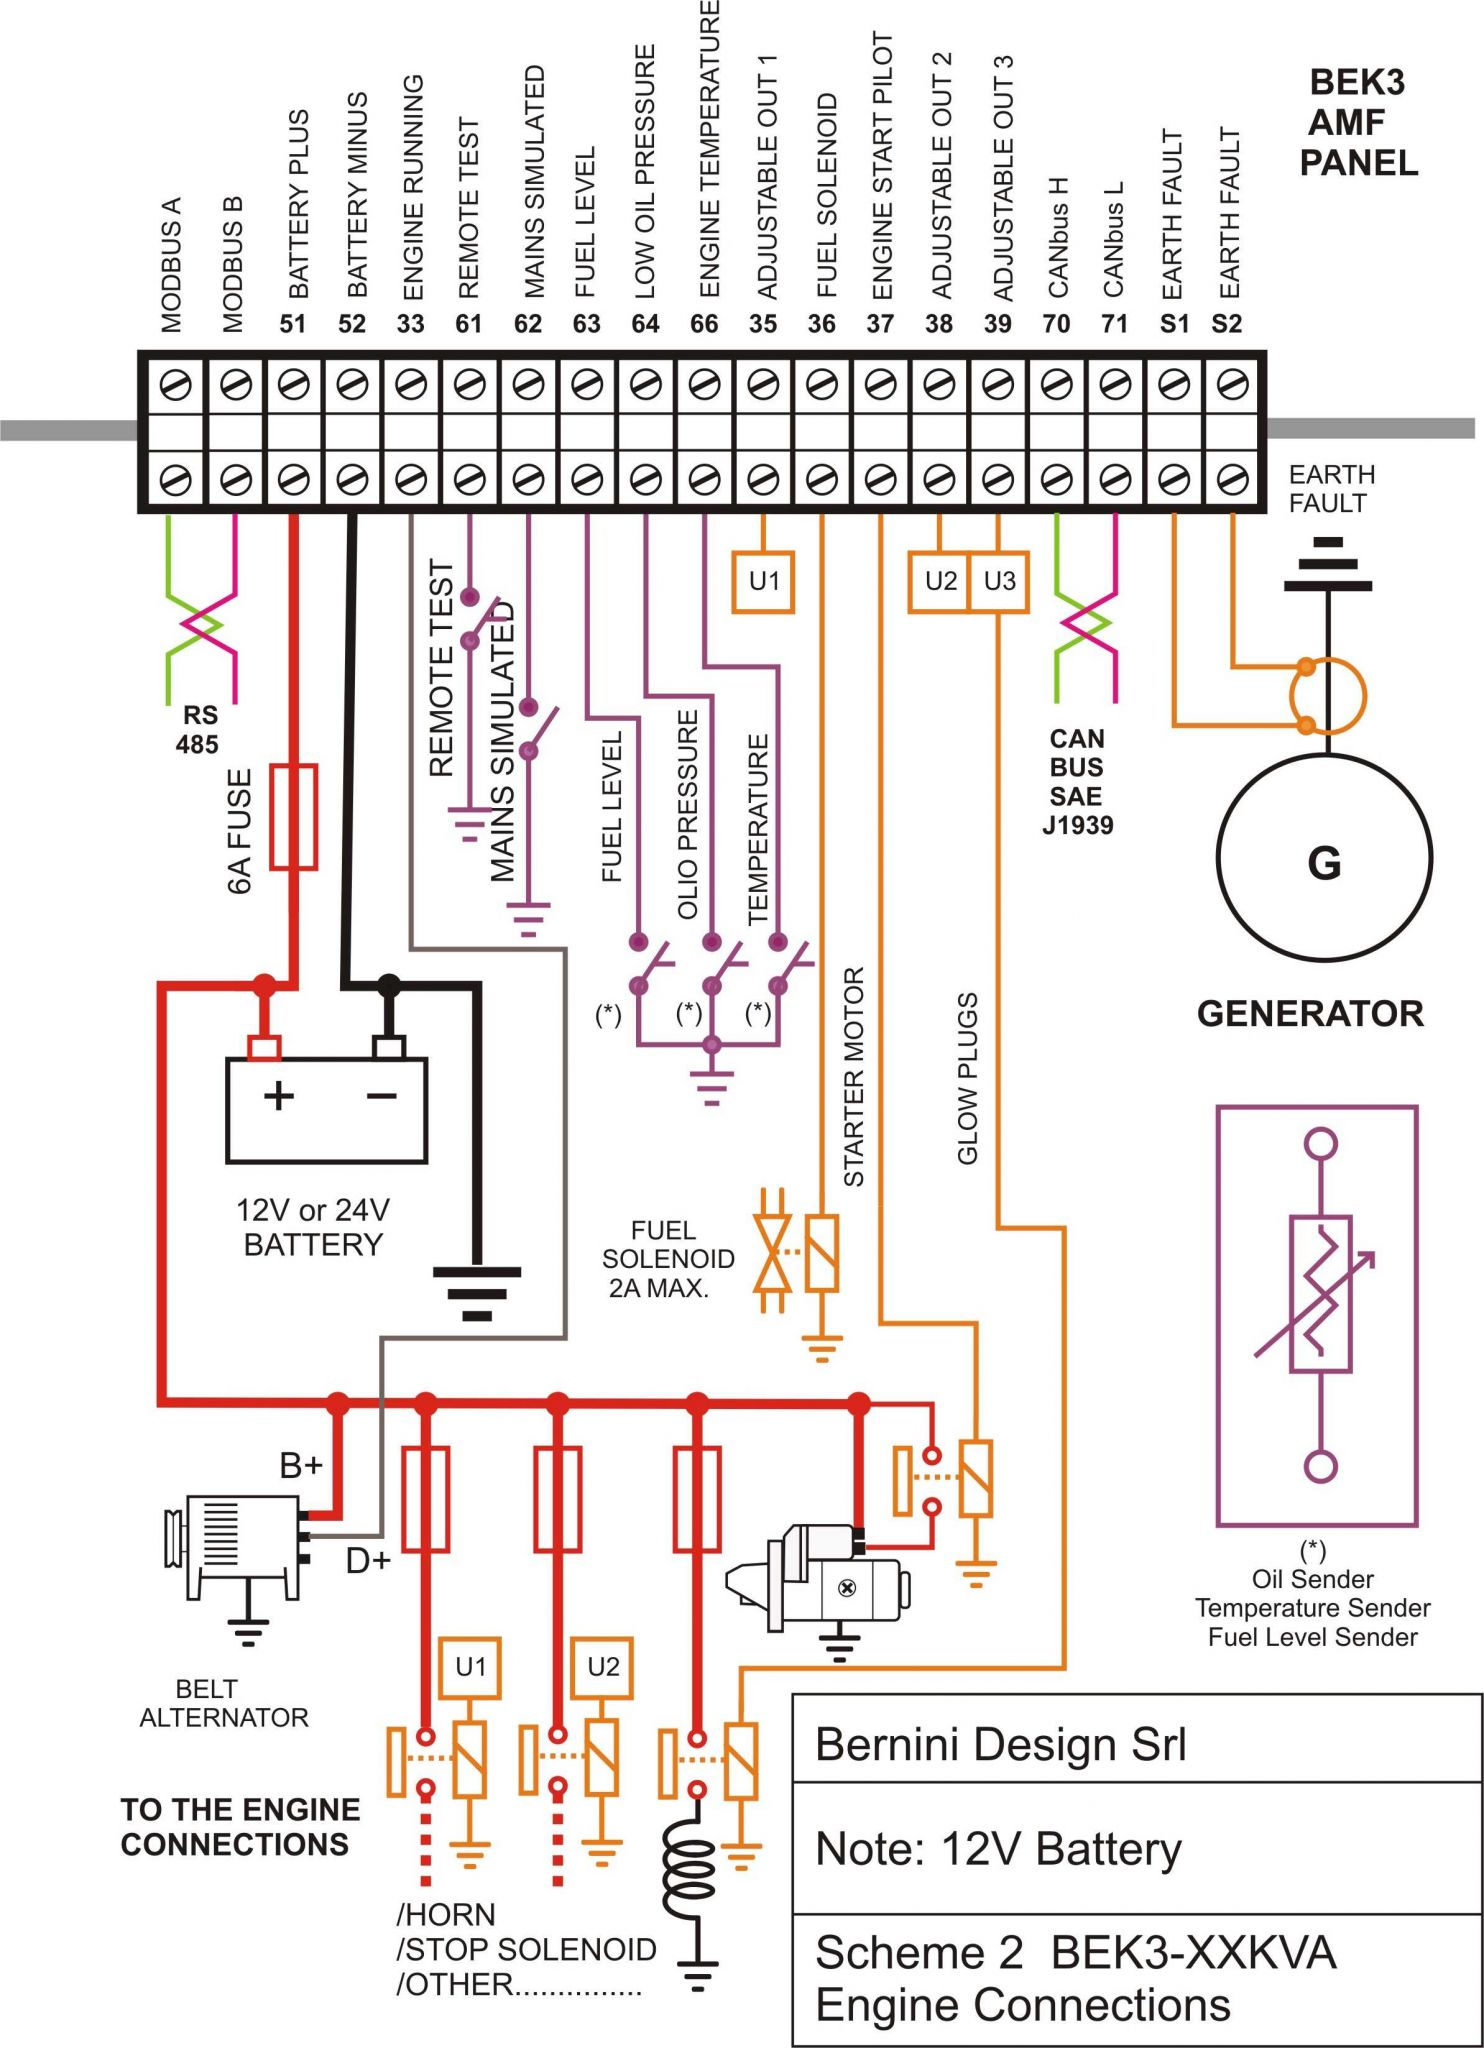 Electricity Worksheet Pdf as Well as Electric Motor Drawing at Getdrawings